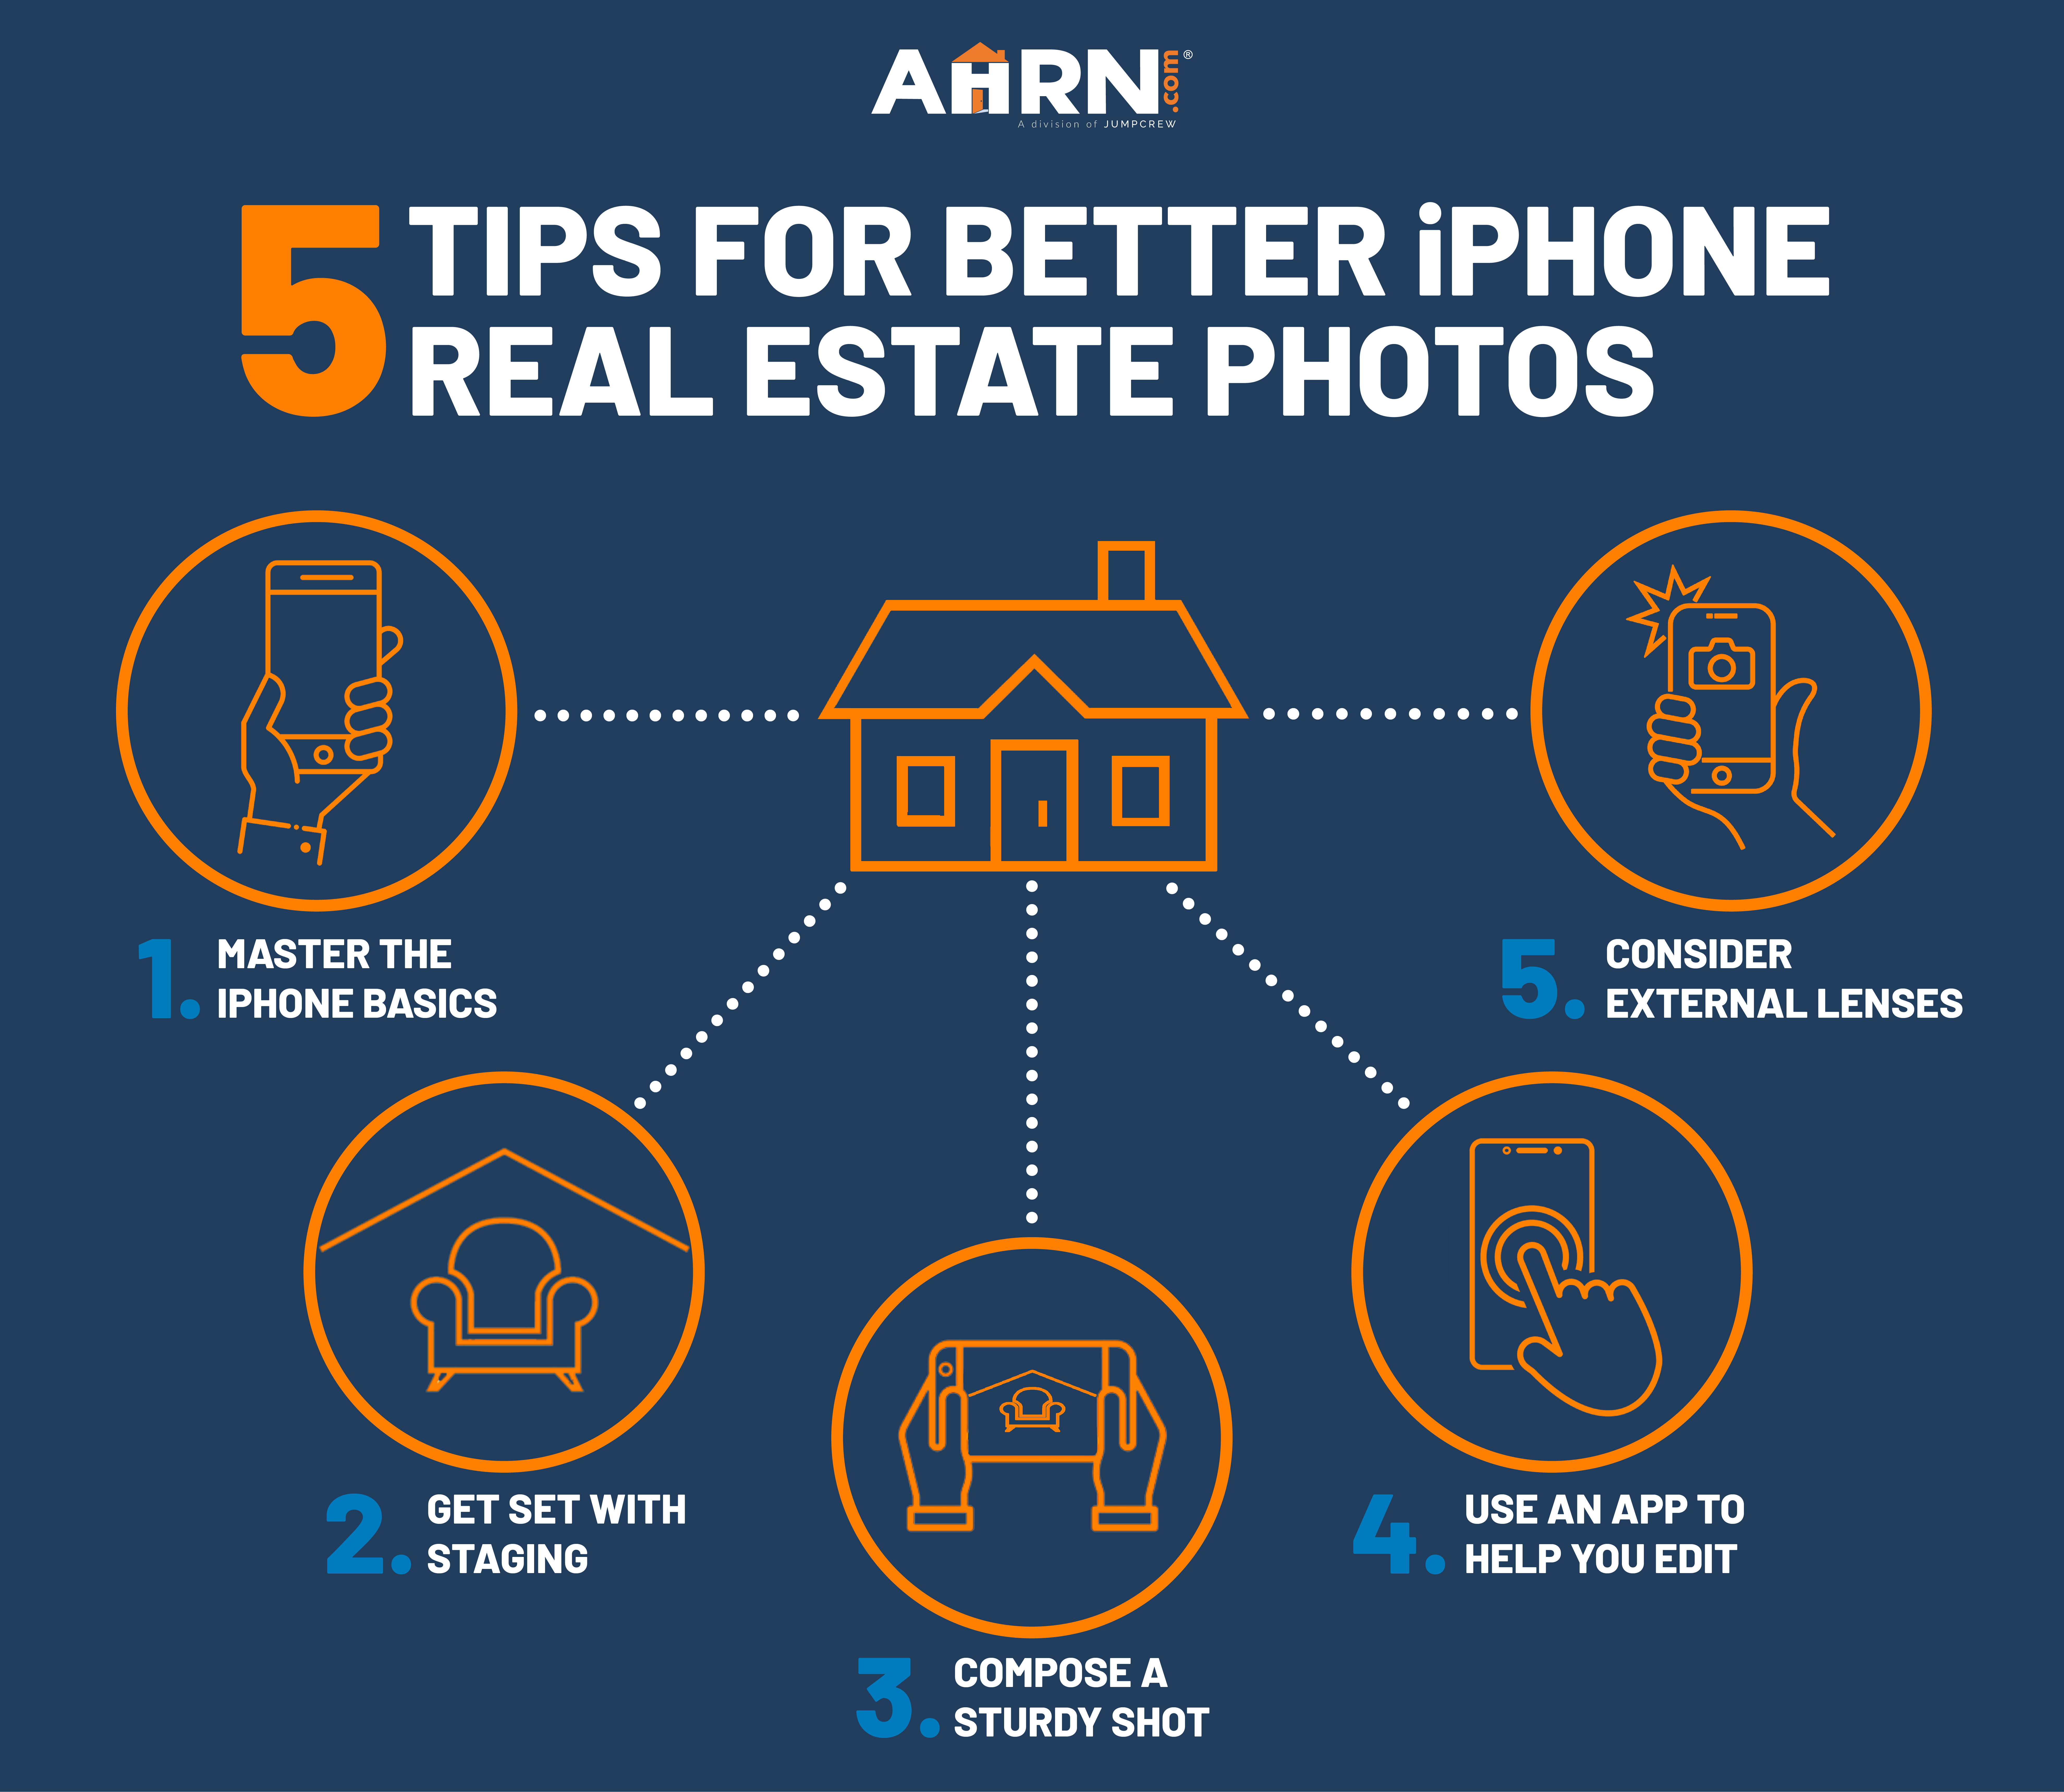 5 Tips For Better iPhone Real Estate Photos